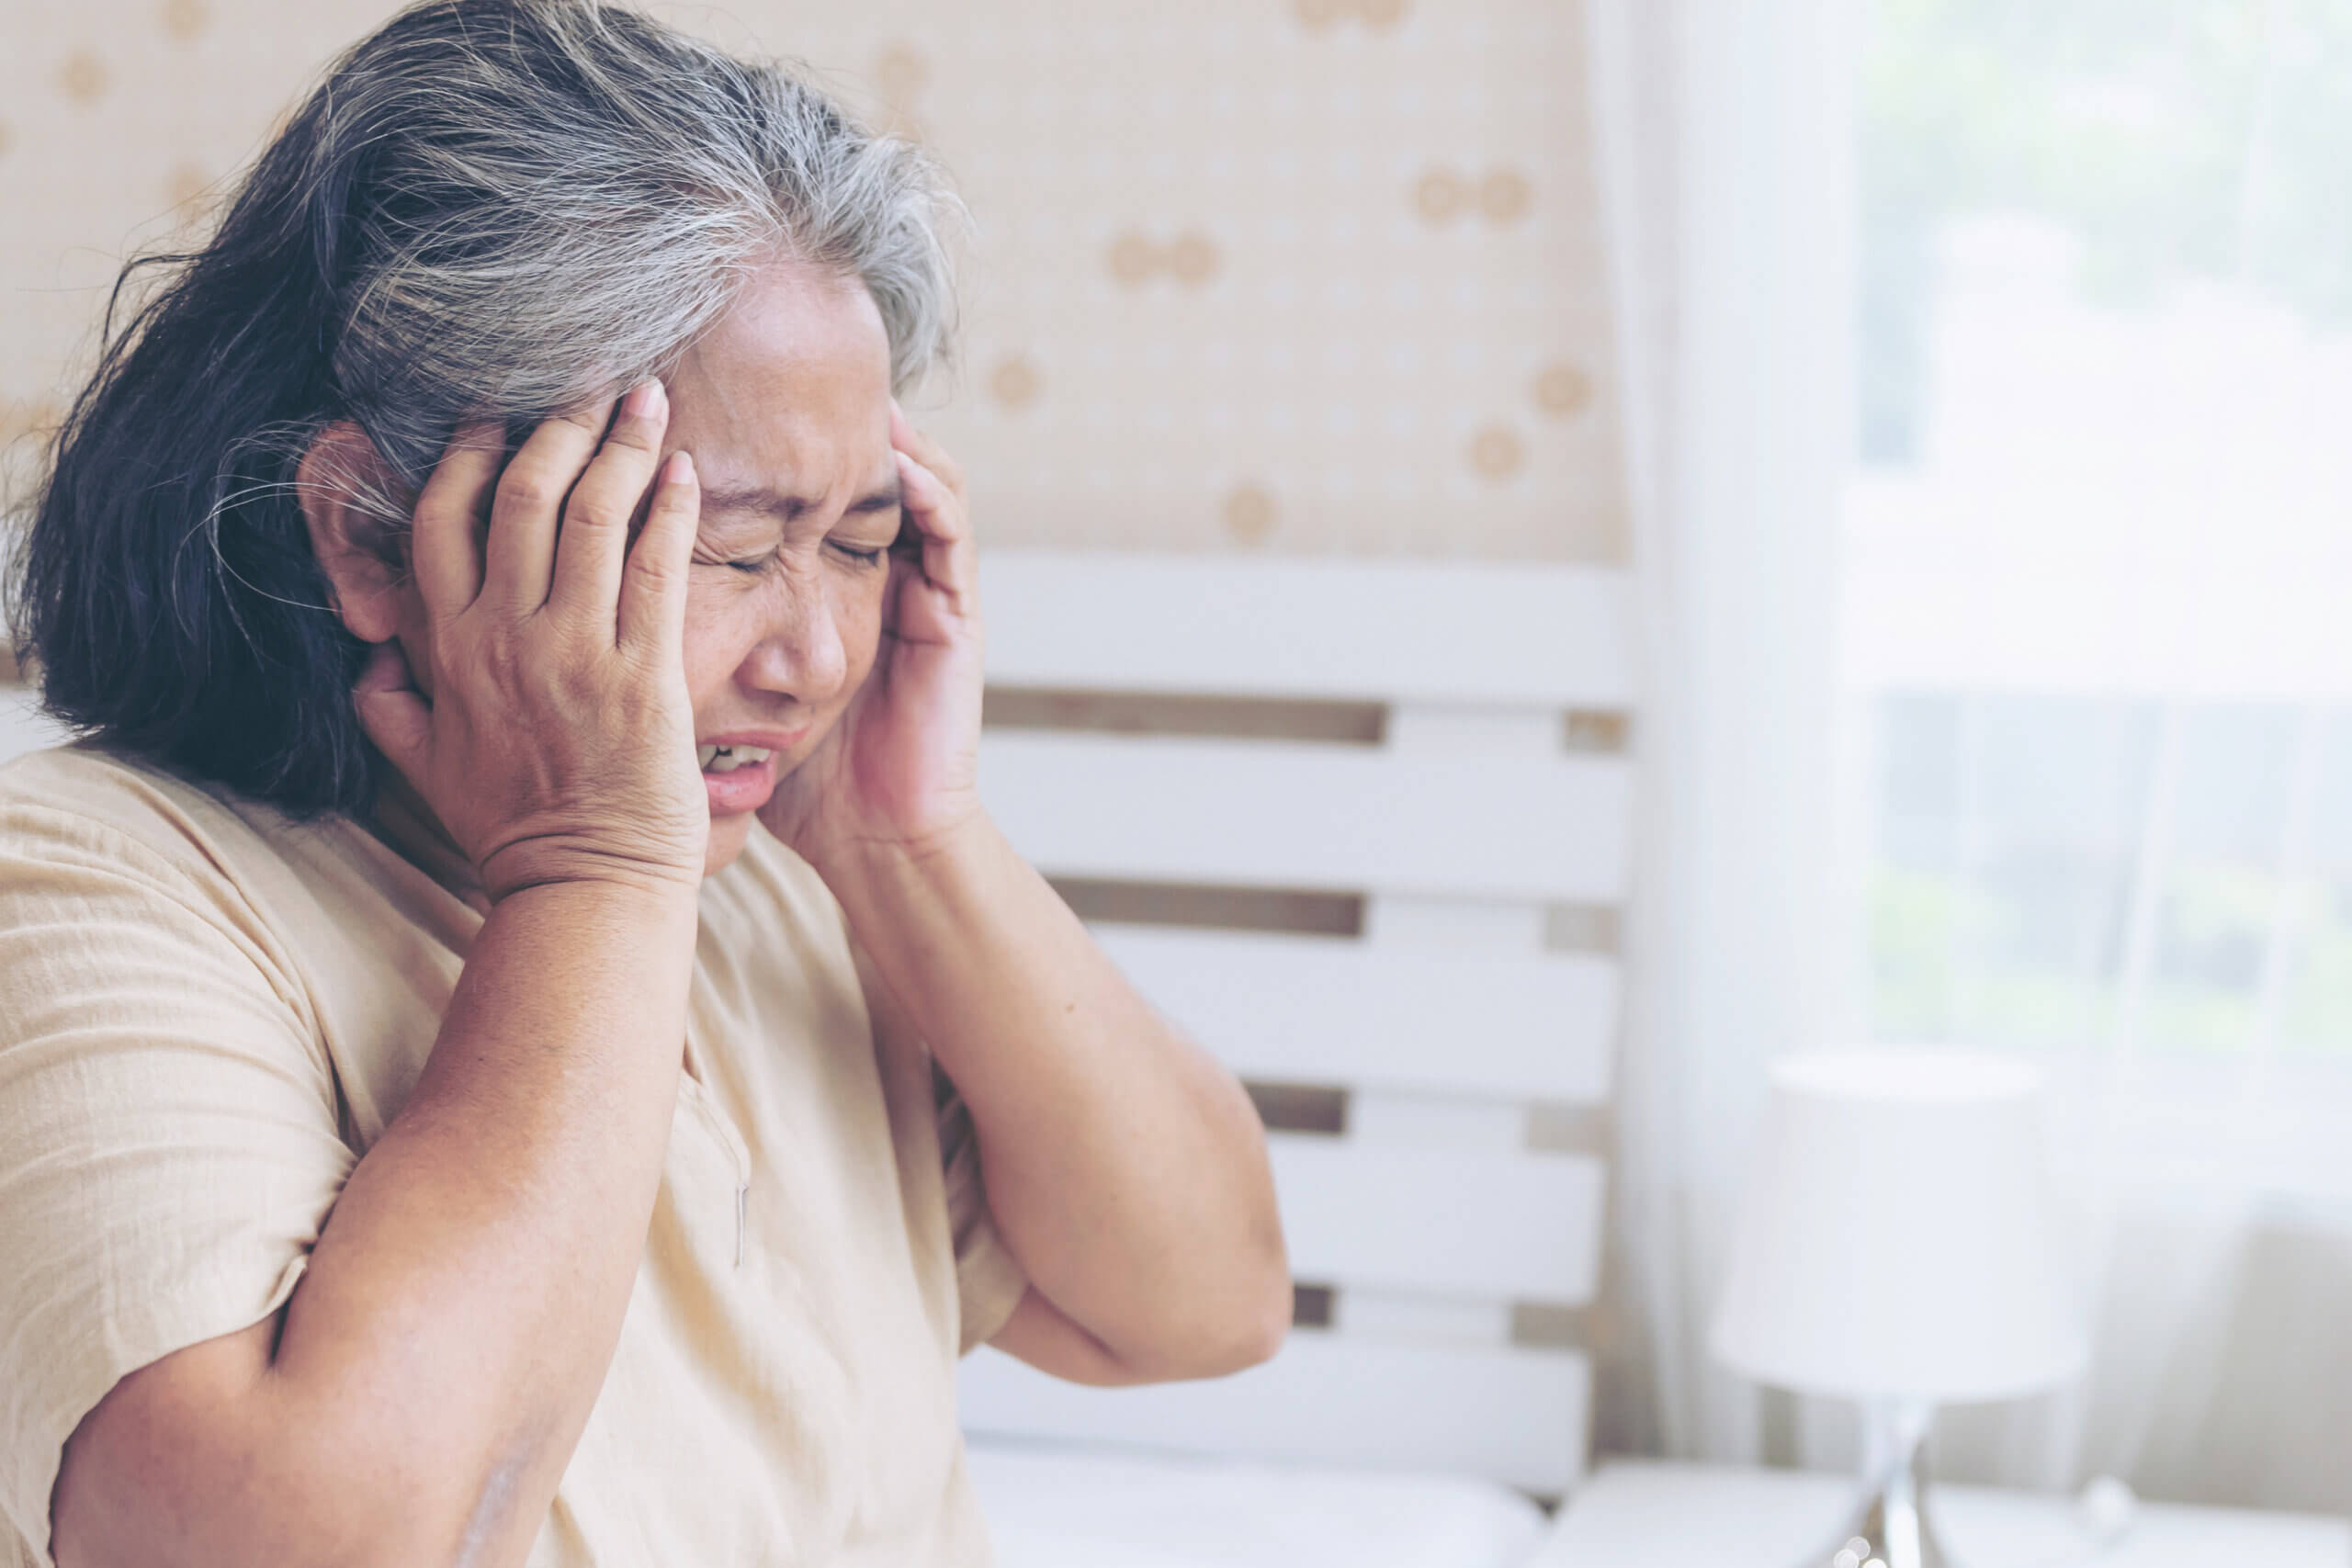 Elderly patients in bed, Asian senior woman patients headache hands on forehead - medical and healthcare concept